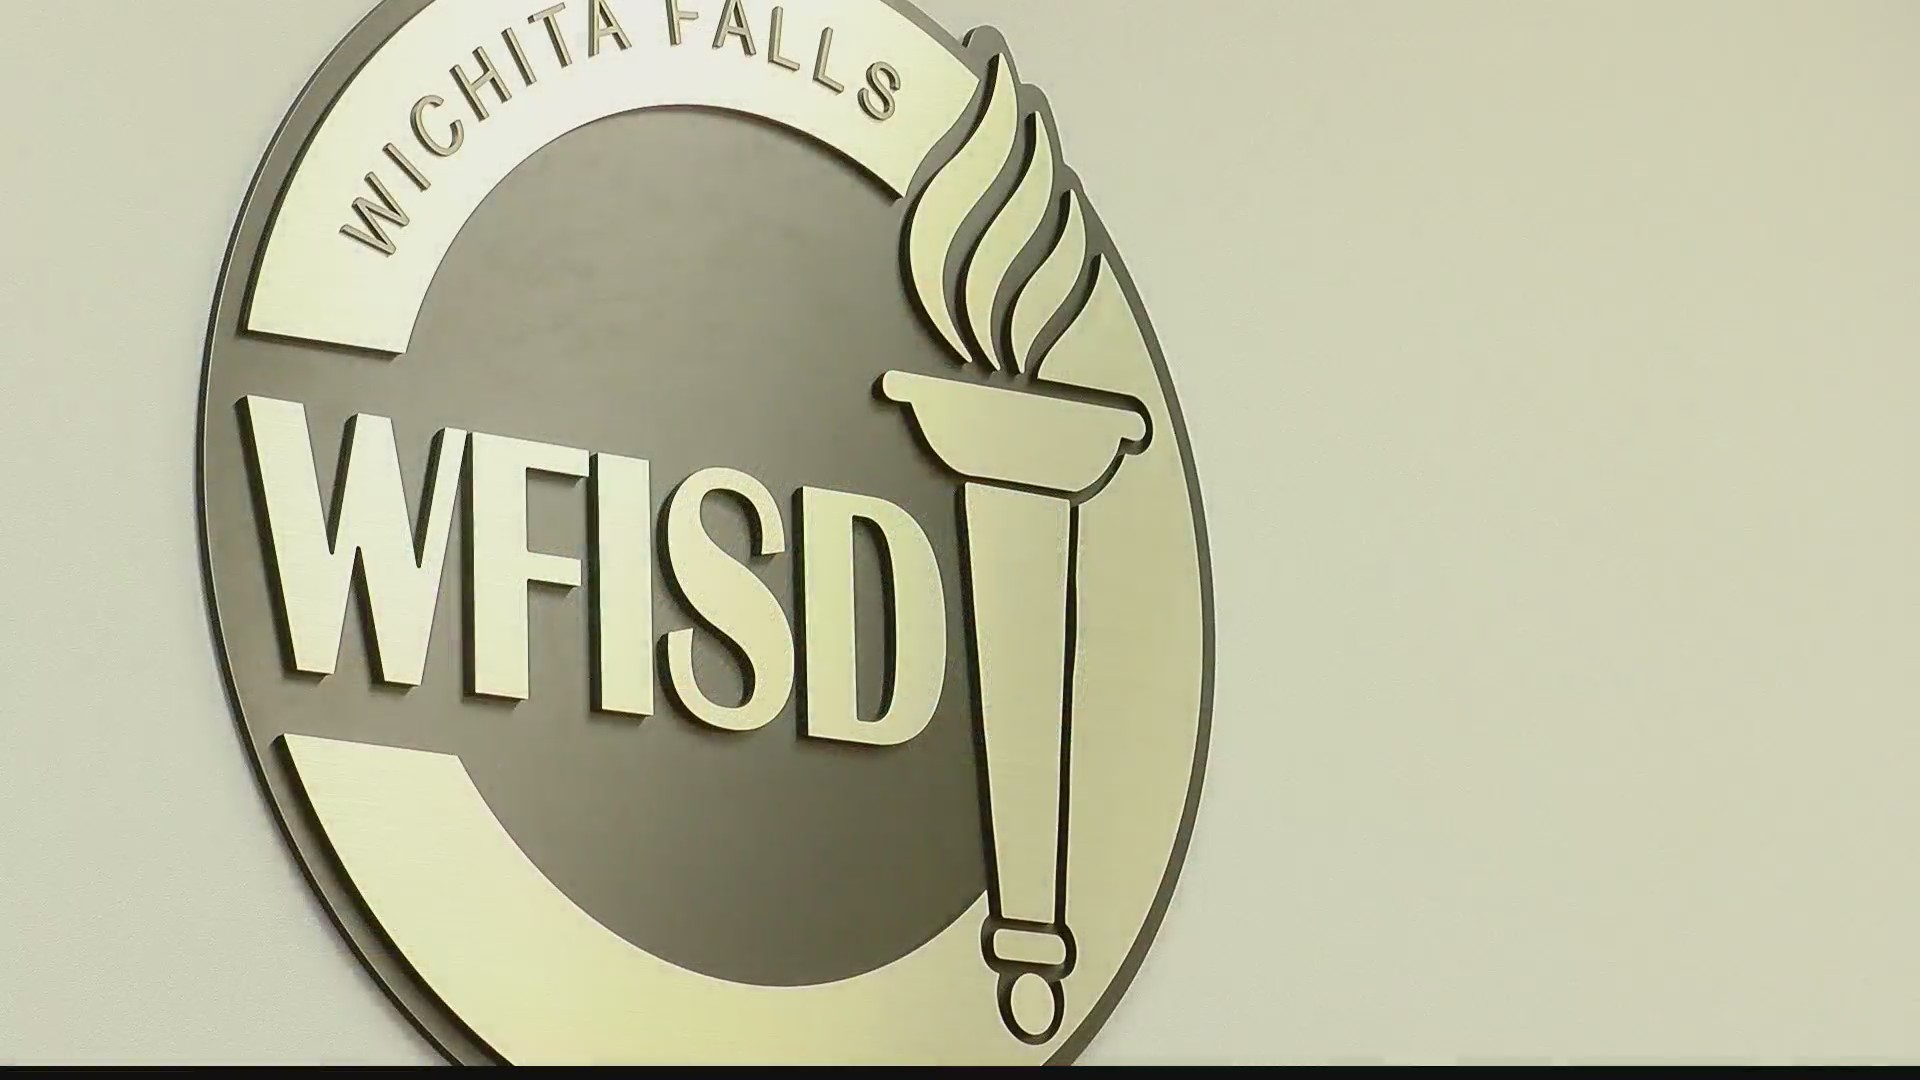 WFISD_school_board_members_to_decide_on__1_20190523231947